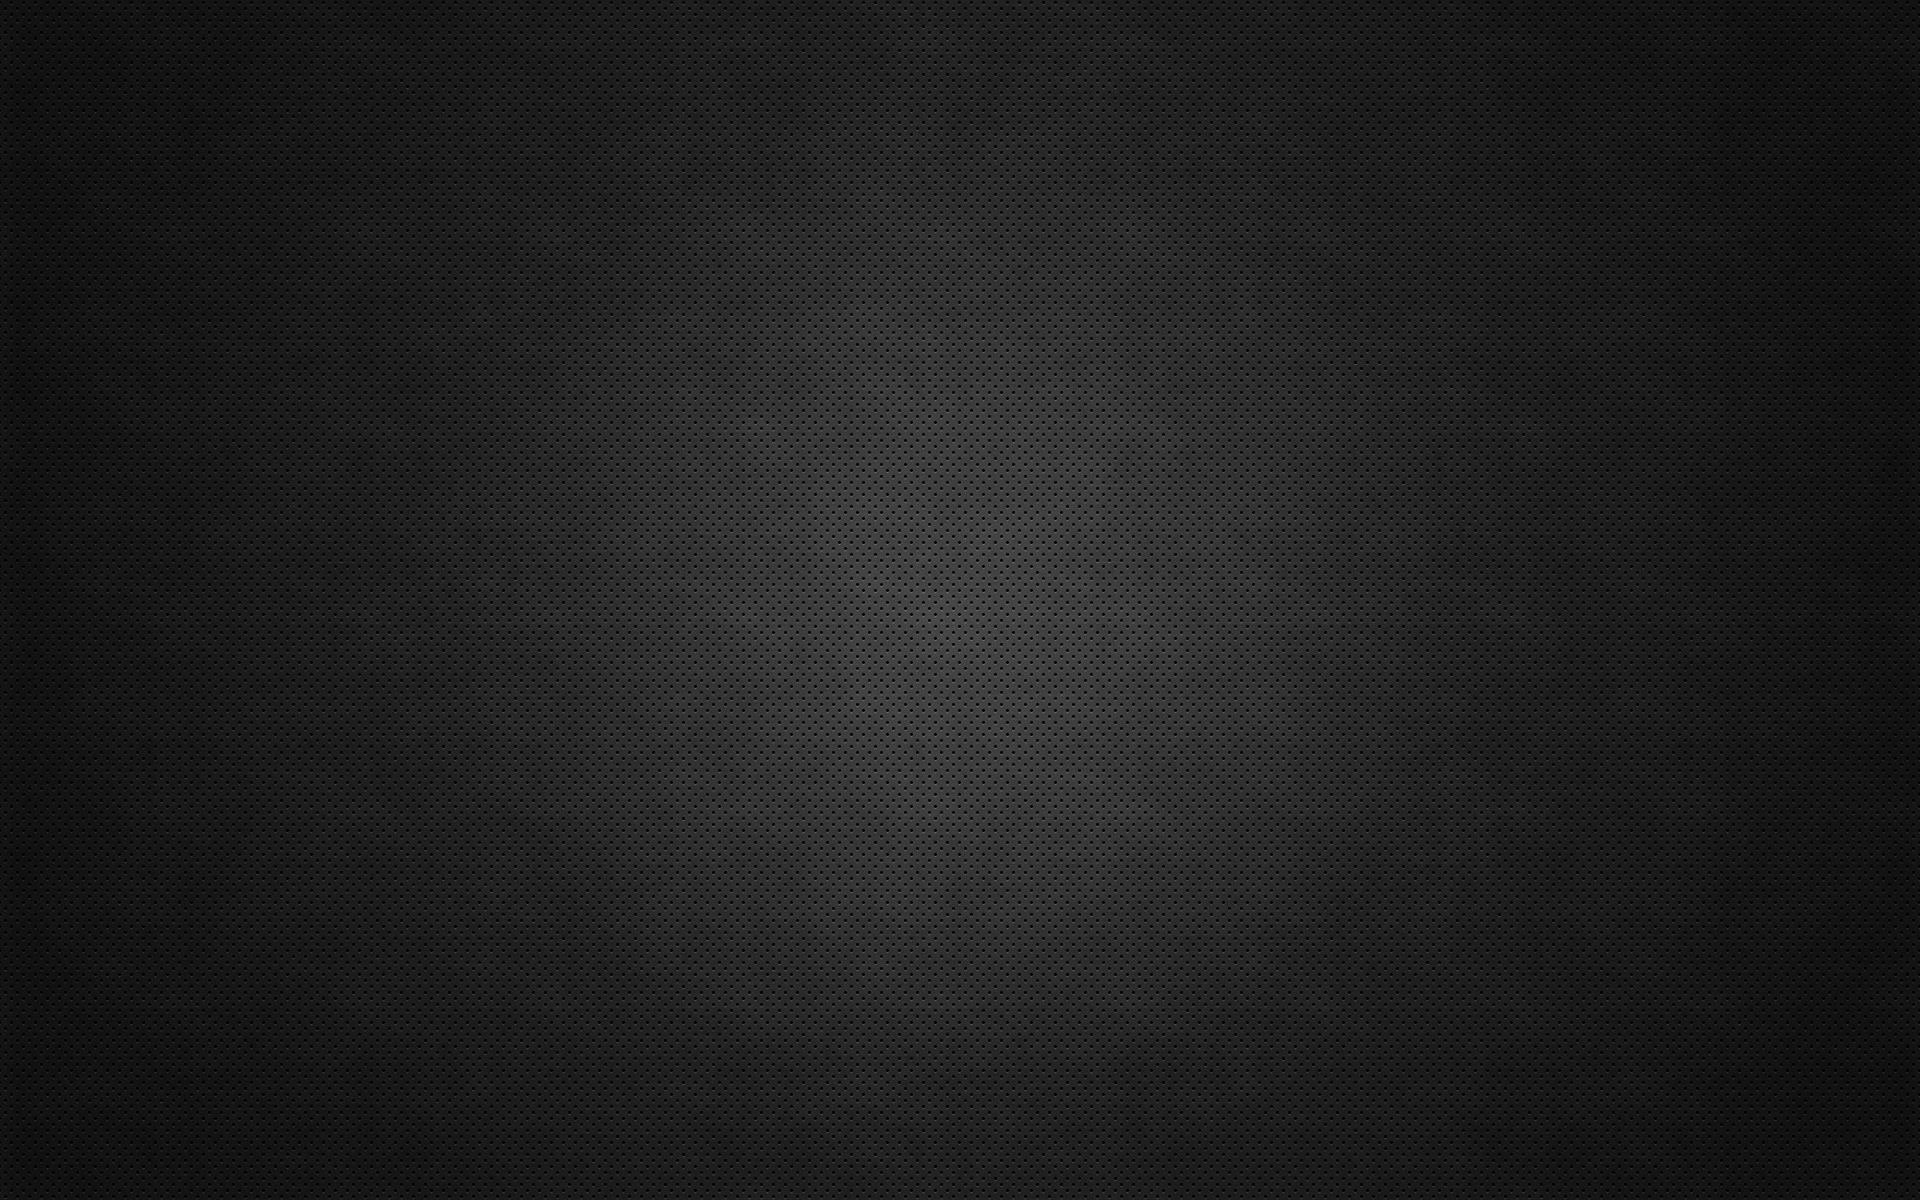 Wallpaper in the style of Mac dark with holes